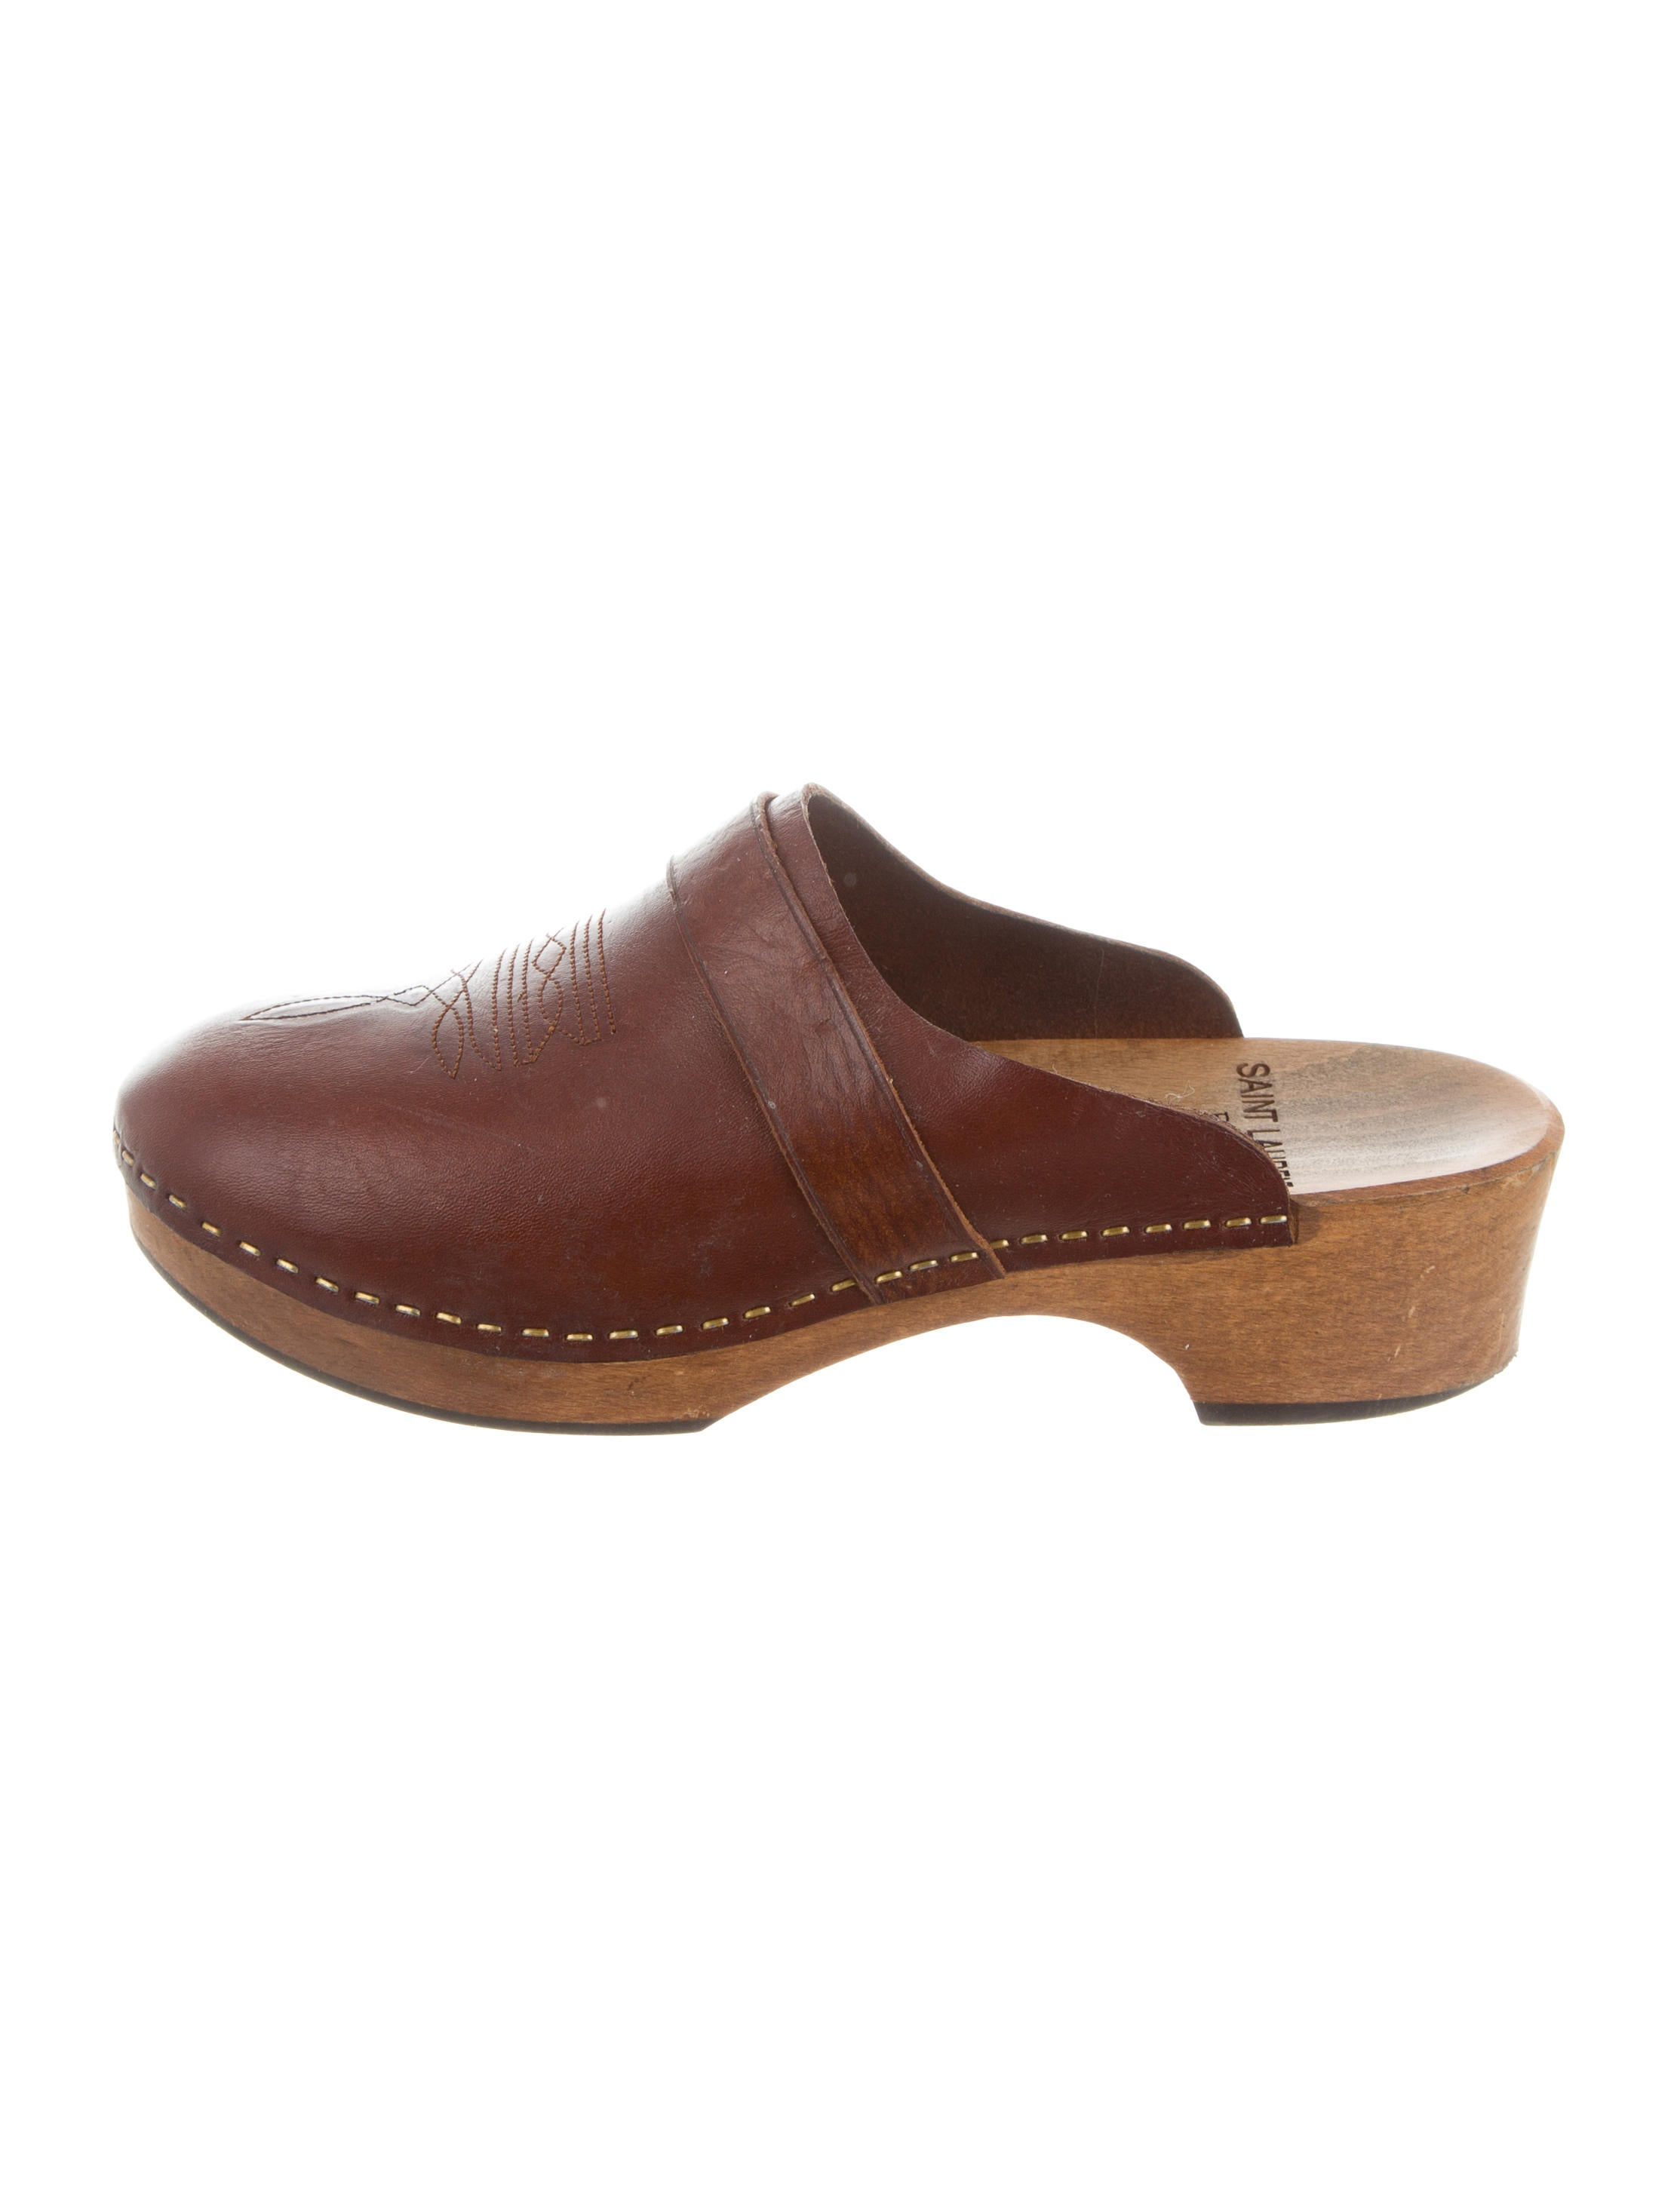 clearance clearance store Saint Laurent Leather Round-Toe Oxfords very cheap online XUrS0GeJV